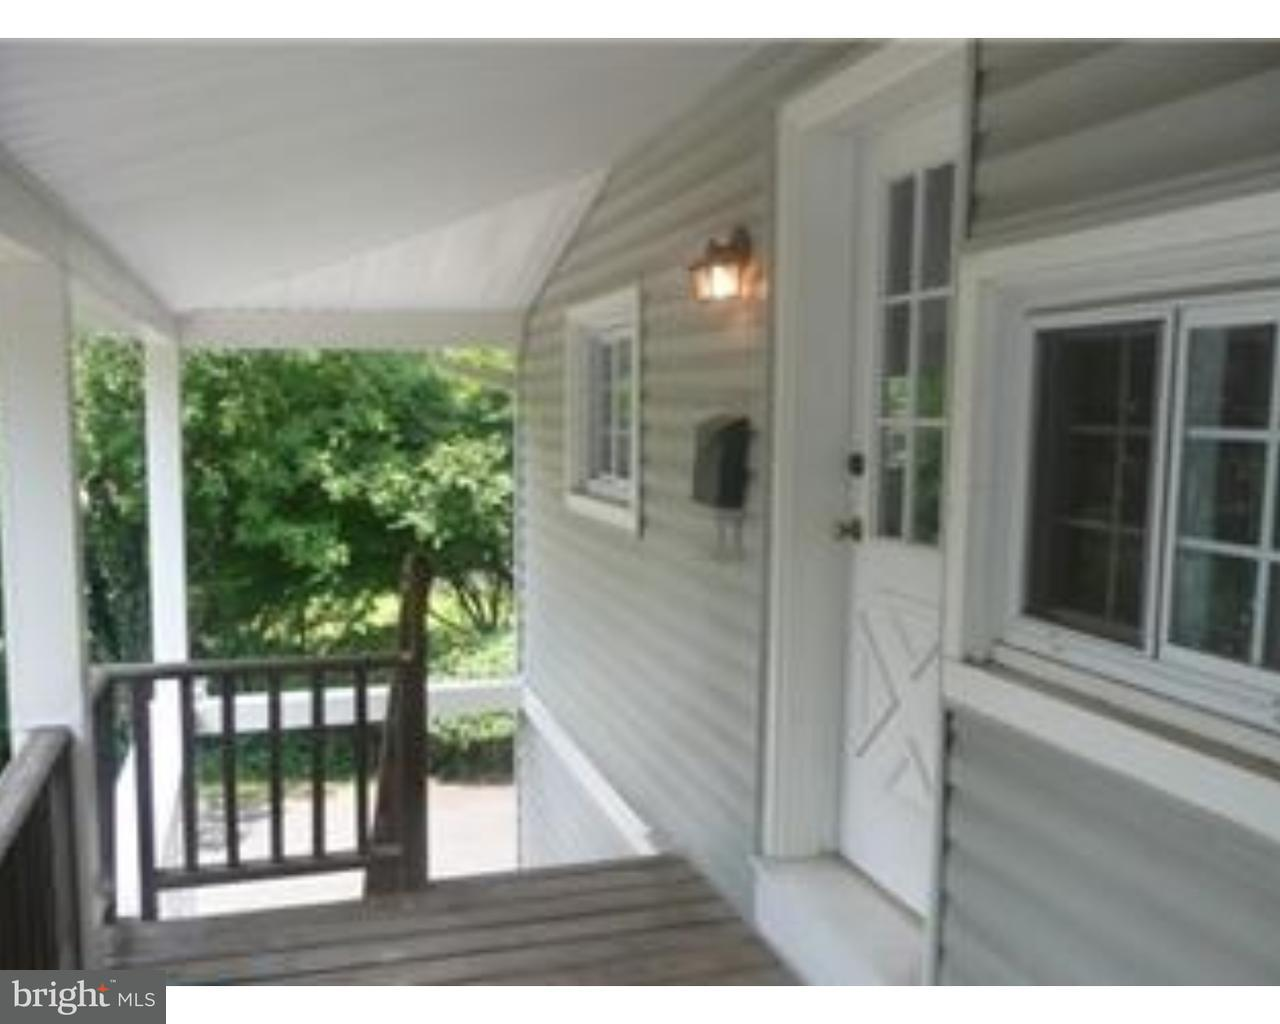 404 LINDEN ST, JENKINTOWN - Listed at $249,000, JENKINTOWN